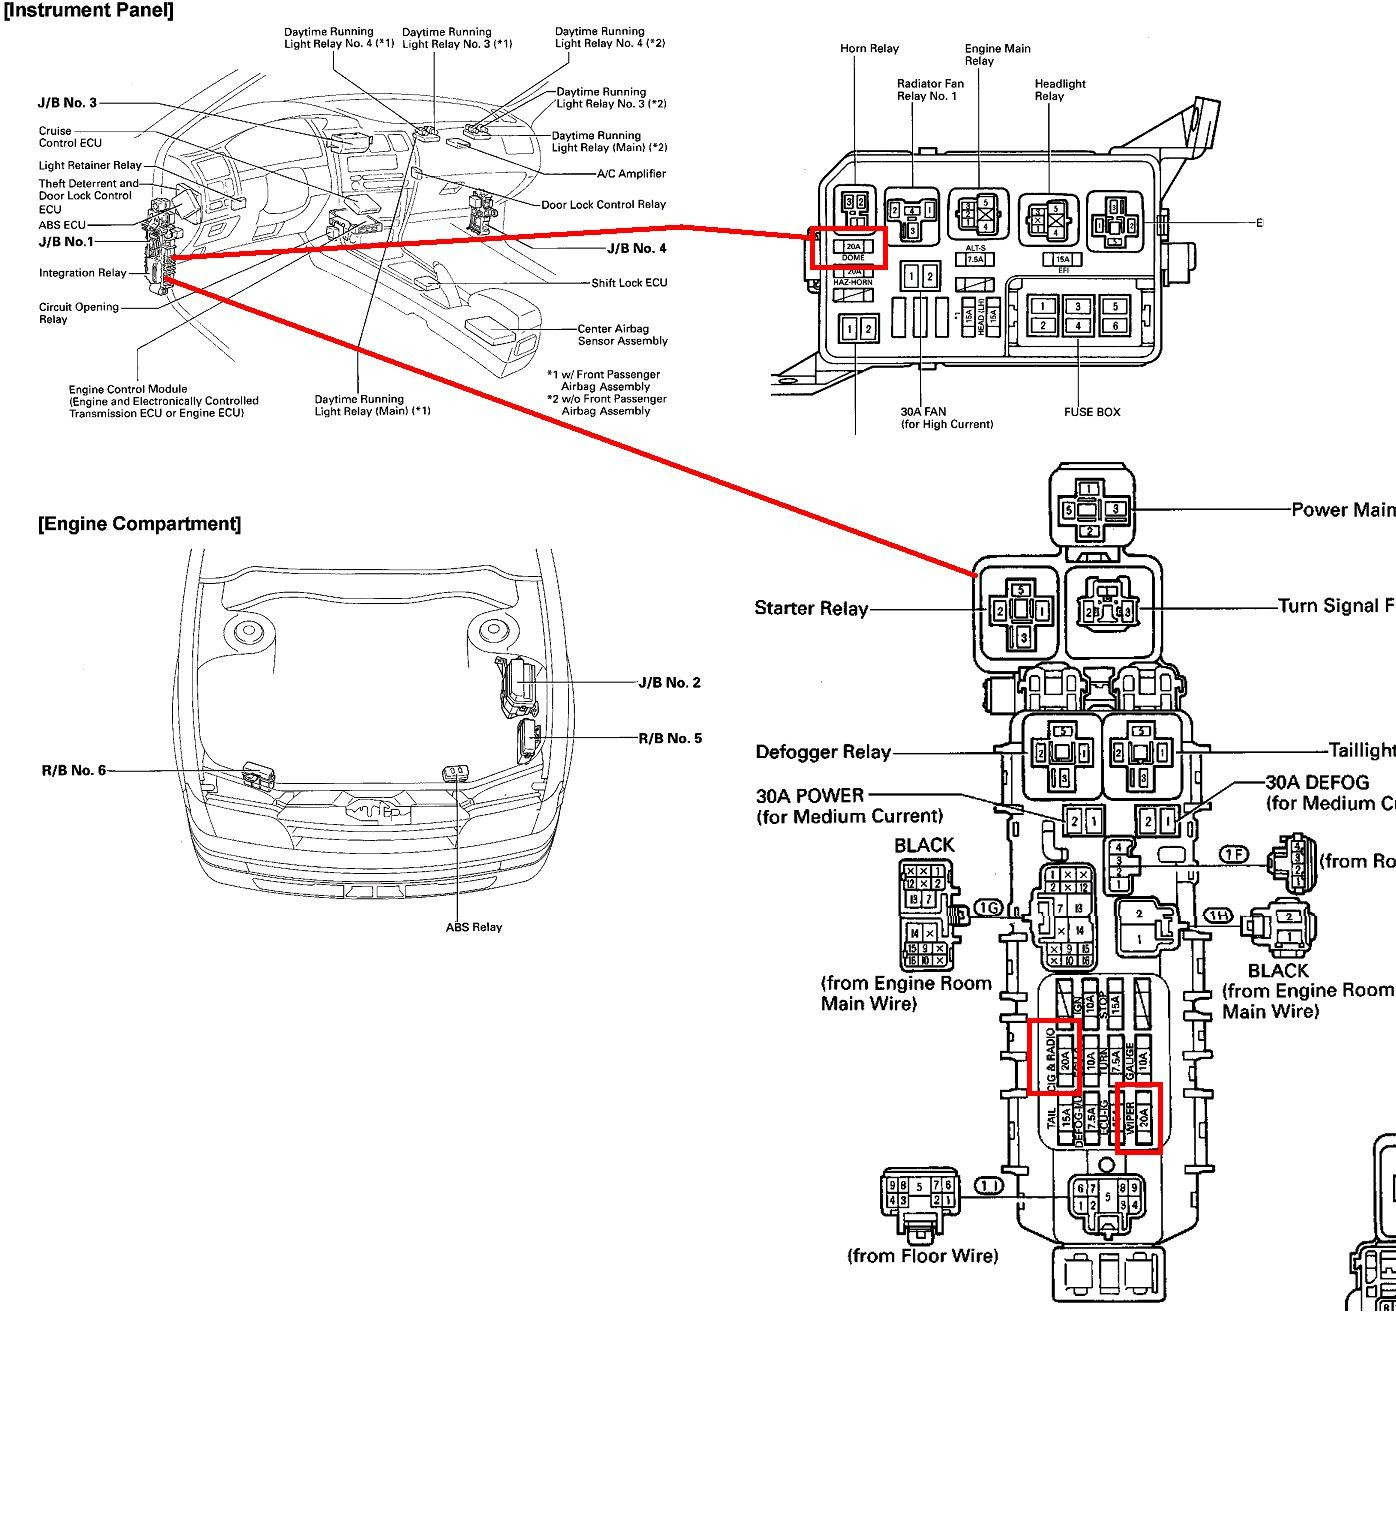 1998 toyota Corolla Engine Diagram 2005 toyota Corolla Alternator Wiring Diagram Wiring Diagram today Of 1998 toyota Corolla Engine Diagram